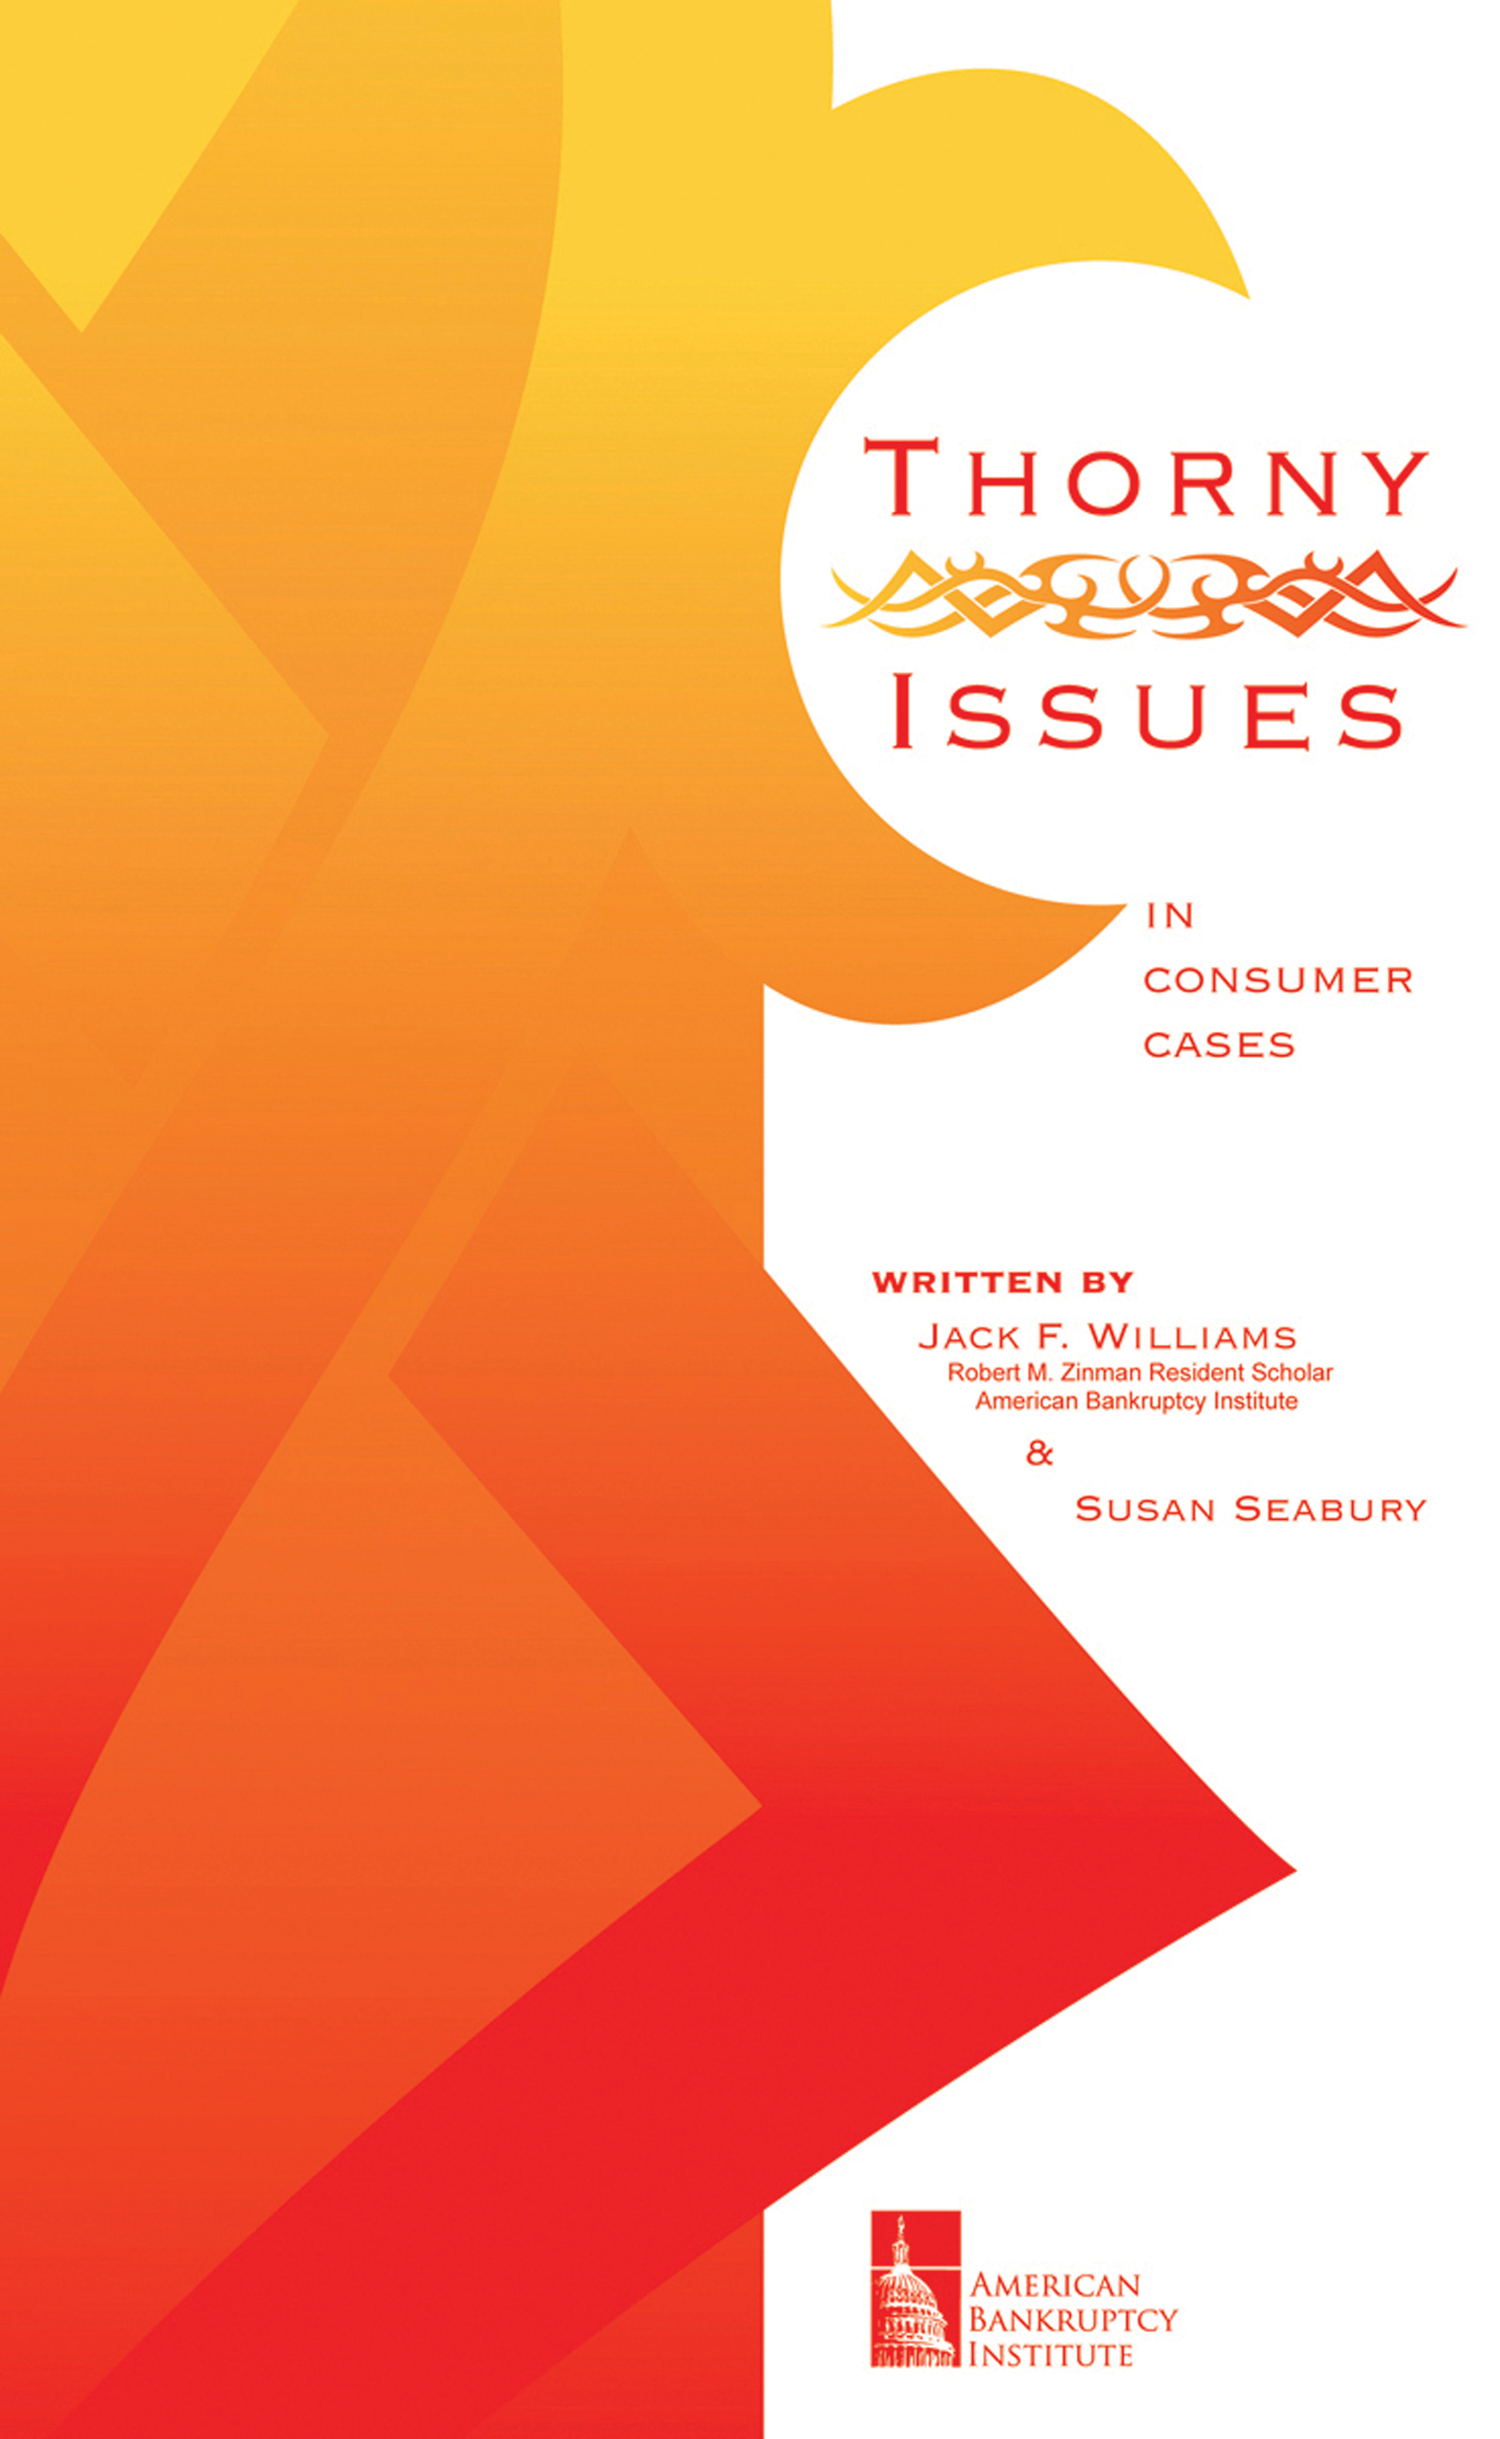 Thorny Issues in Consumer Bankruptcy Cases